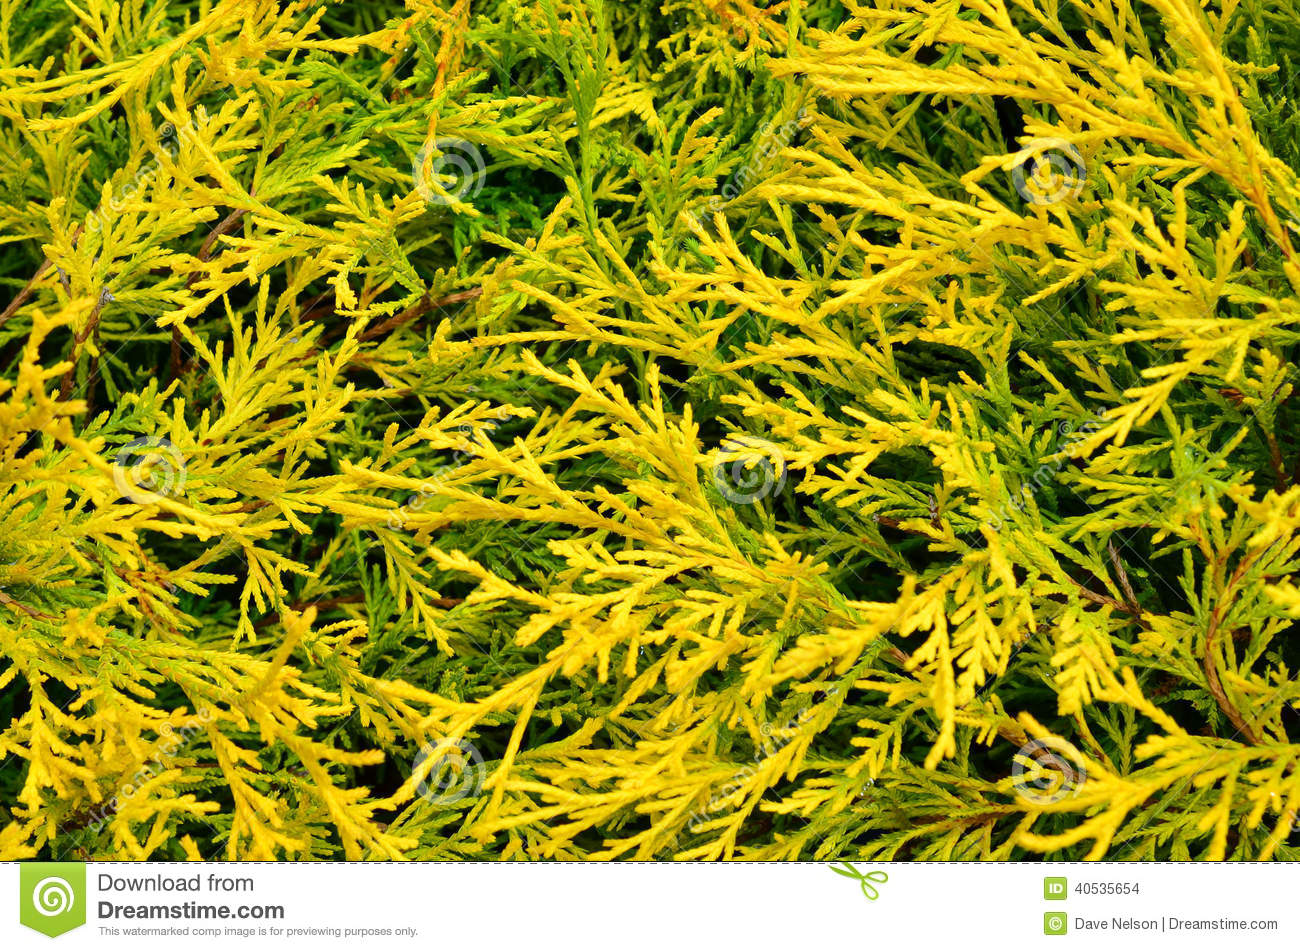 lifenet helicopter with Stock Images Lemon Threadbranch Sawara Cypress Closeup Accent Shrub Background Image40535654 on Article 57341404 B9ef 5b78 A385 2a0ceee59556 in addition Player Benched Ice Rescue Causes Miss Team Bus in addition 77581610 moreover Lugoff Fire Works Major Entrapment together with No Adianta Parecer Preciso Ser.